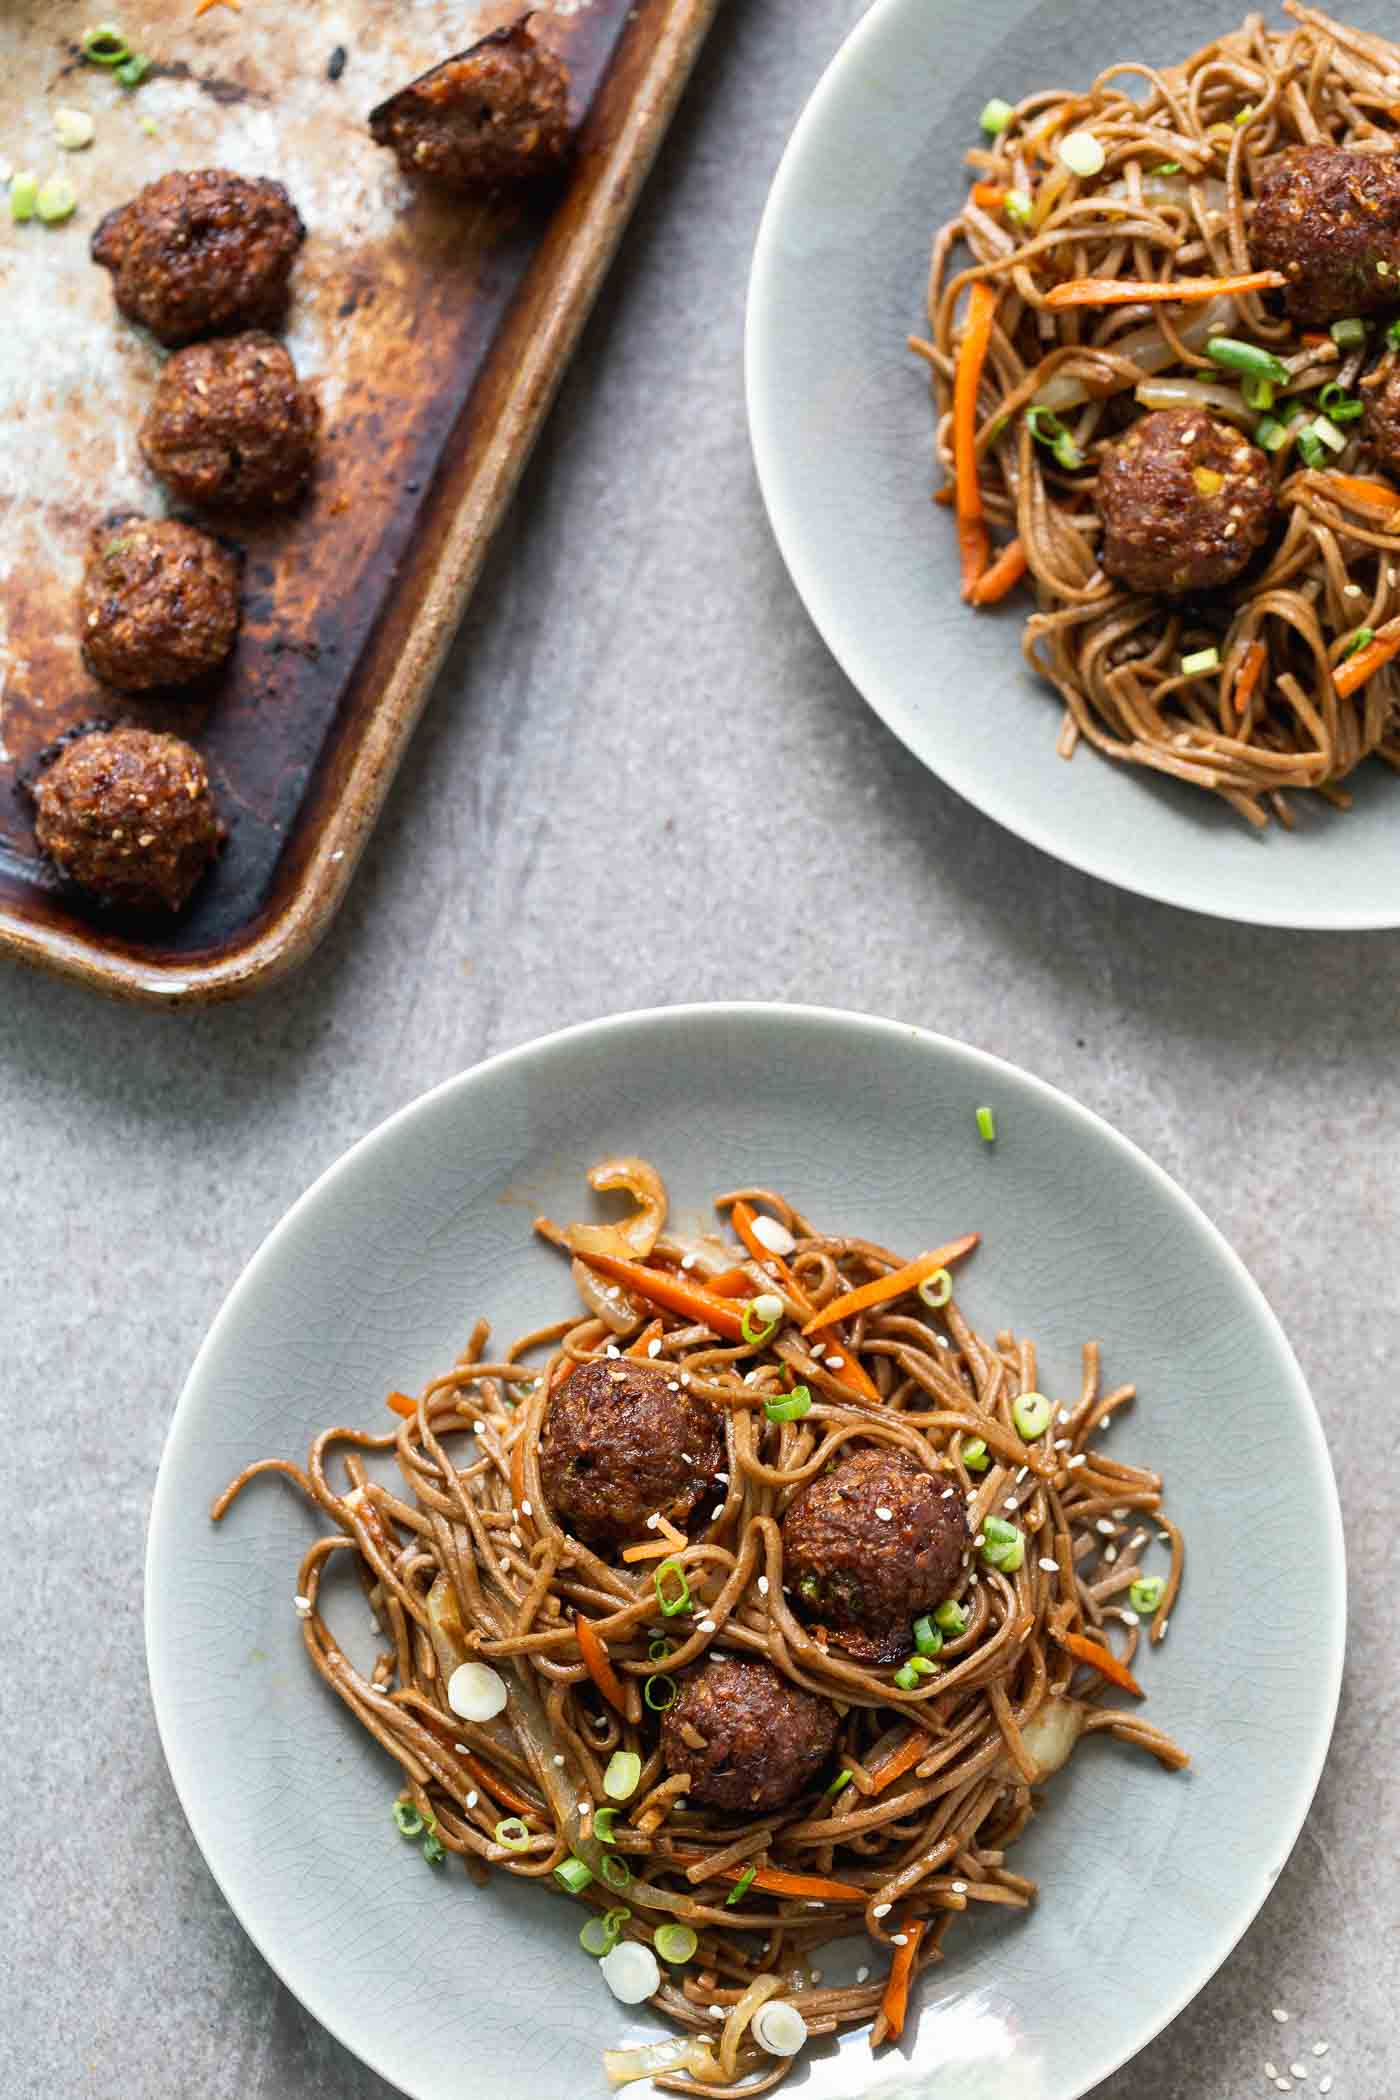 Dino reccomend Asian meatballs over sesame noodles